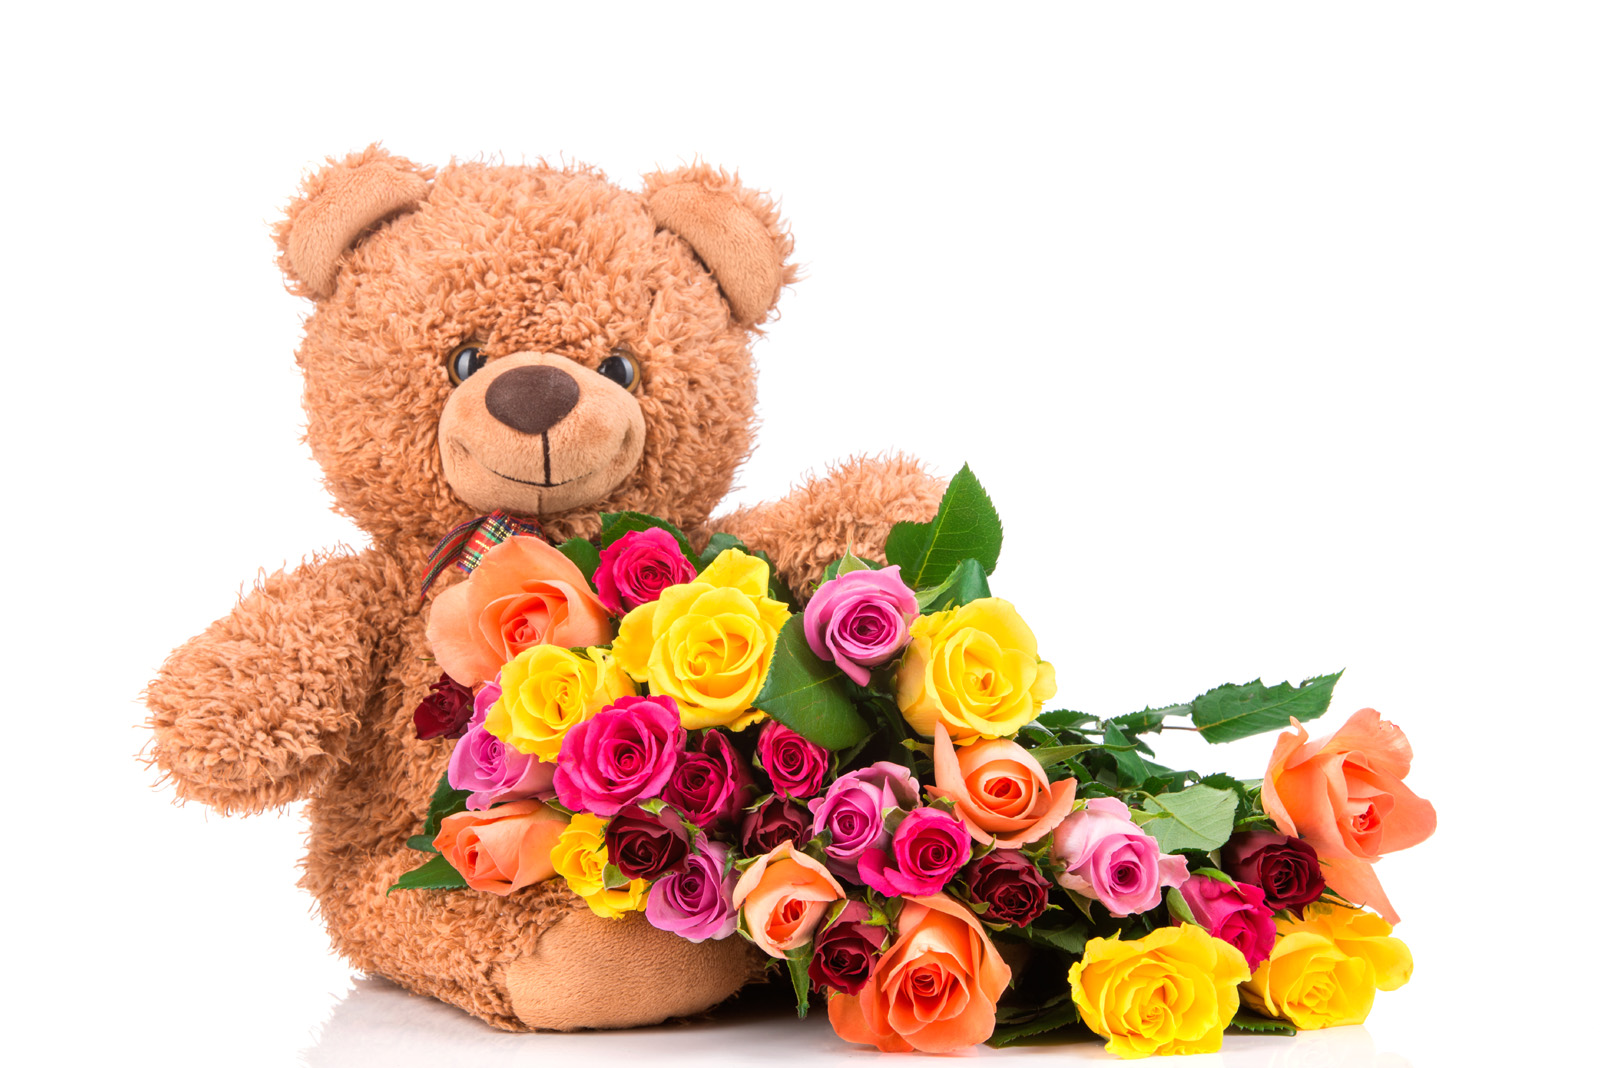 Teddy bears and roses 51419